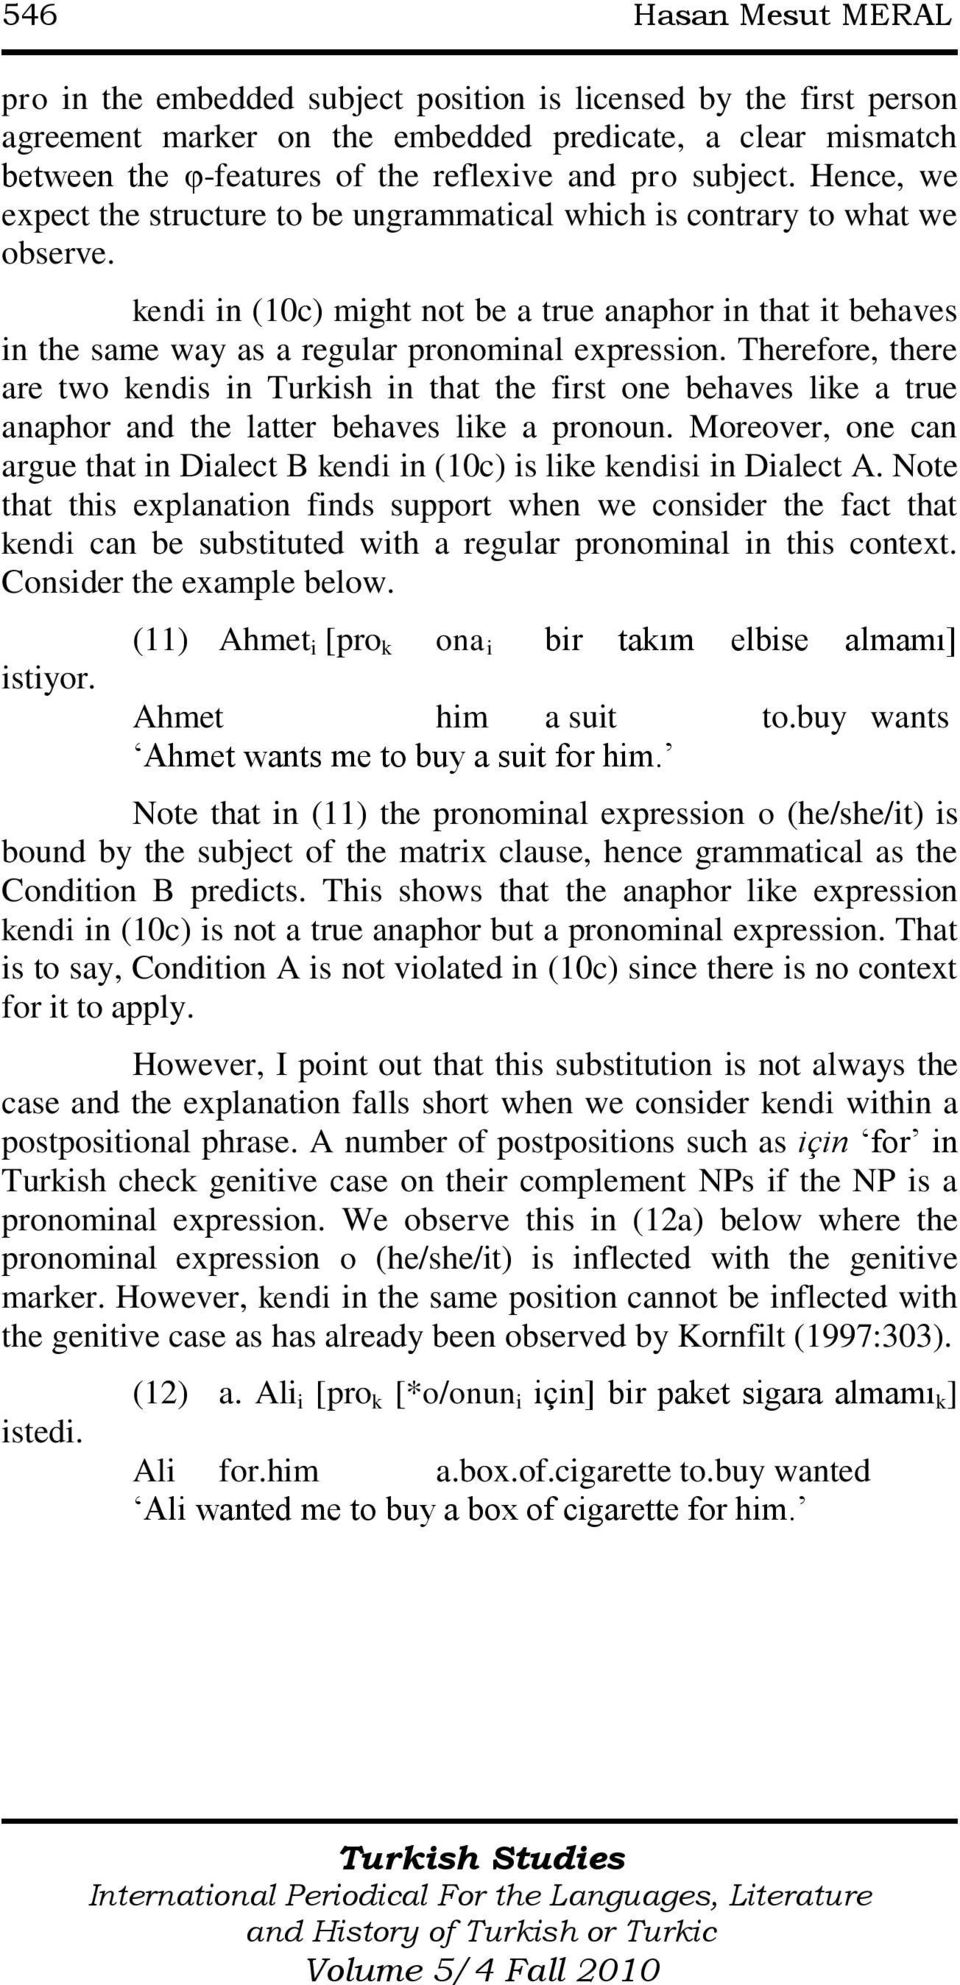 kendi in (10c) might not be a true anaphor in that it behaves in the same way as a regular pronominal expression.